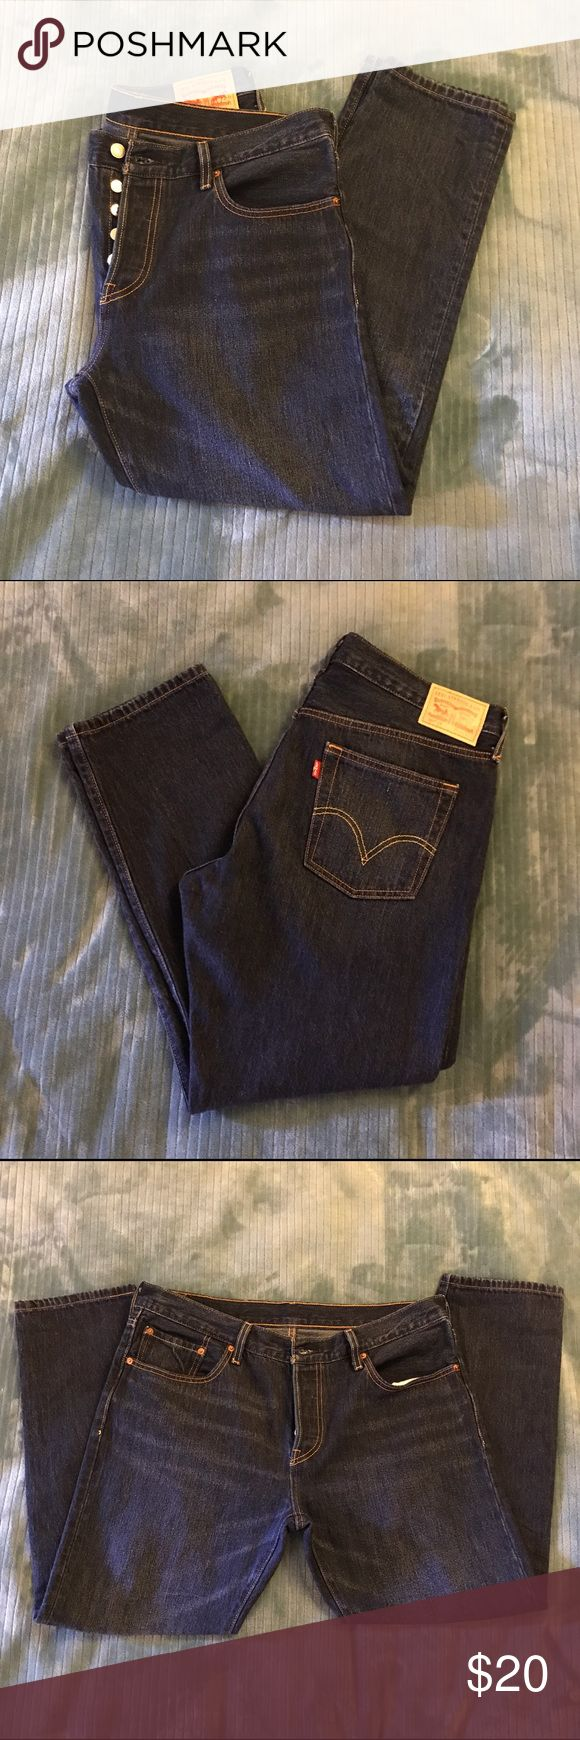 Levis 501 Blue Jeans 💙 Brand new pair of Levis, Never worn! Super cute classic style with a modern tapered twist.   ✅ new without tags ✅ great condition ✅ bundles are okay ✅ offers welcomed  🚫 no trades 🚫 no paypal   ❤️ feel free to ask questions!   please note: actual item may look slightly different due to the styling and lighting used in the photos. ALL SALES ARE FINAL.   Happy poshing! 💋 Levi's Jeans